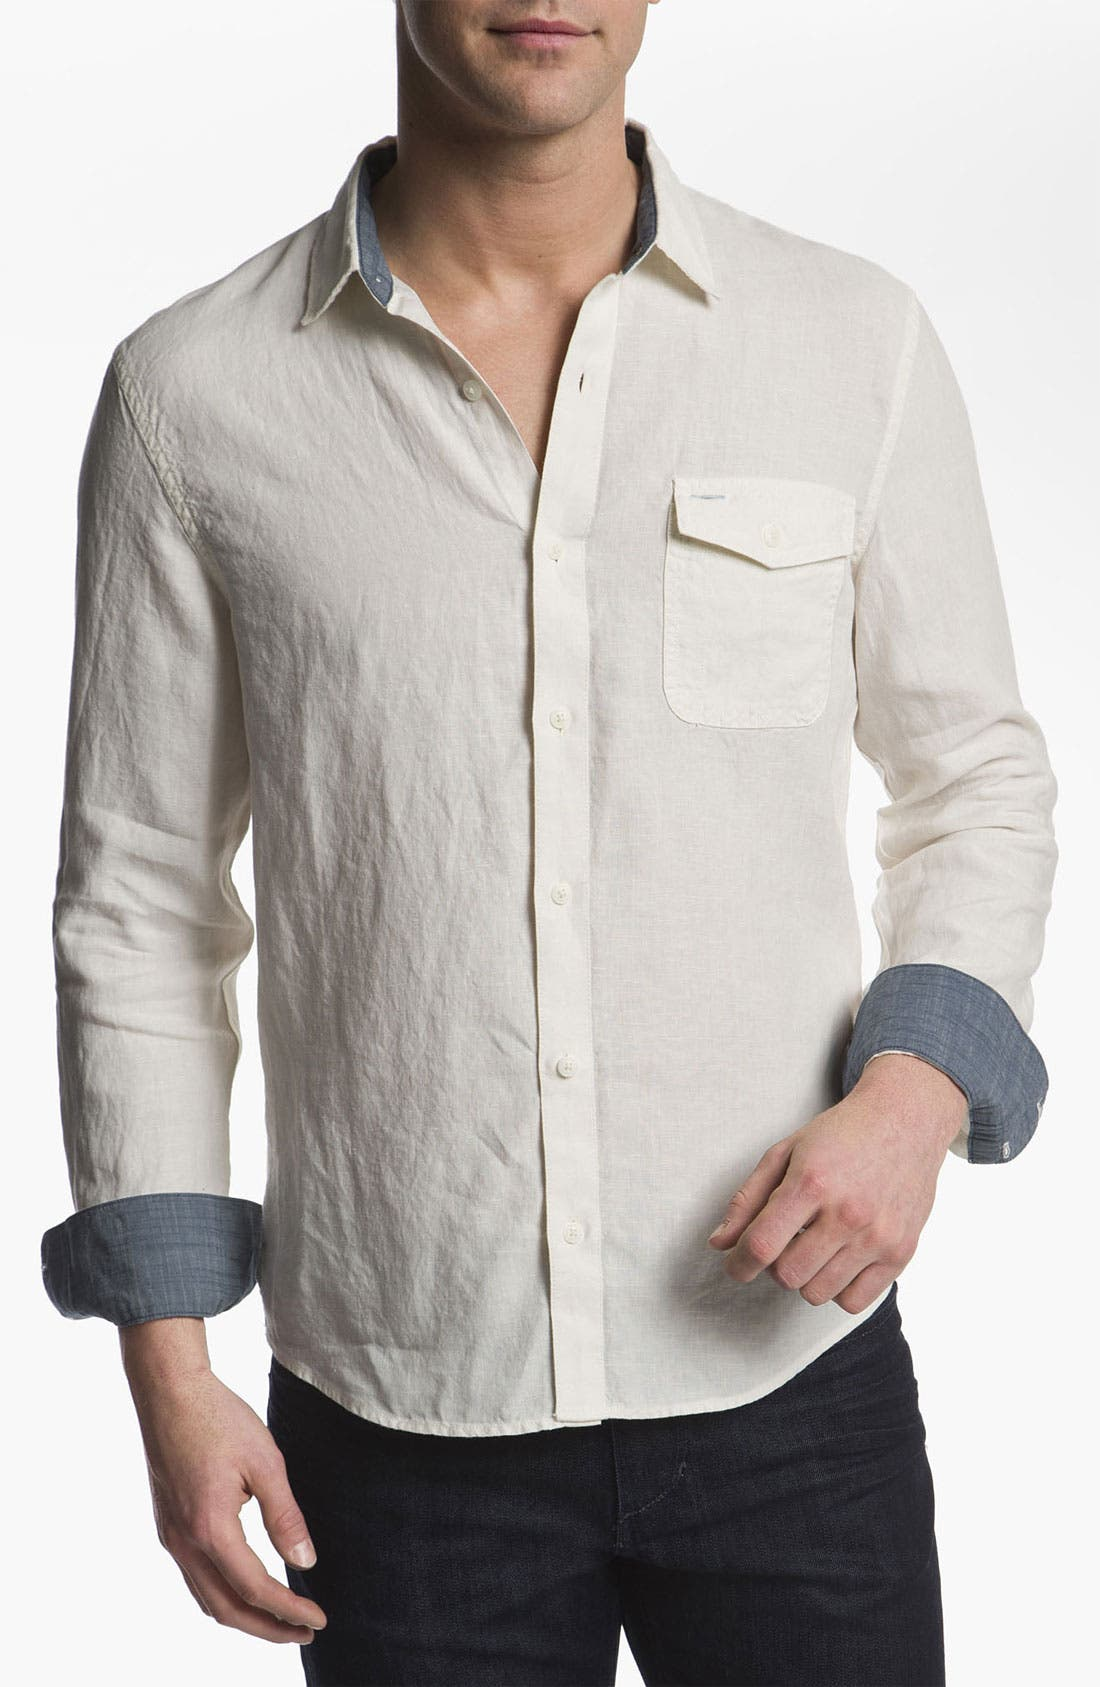 Alternate Image 1 Selected - 1901 Woven Linen Shirt